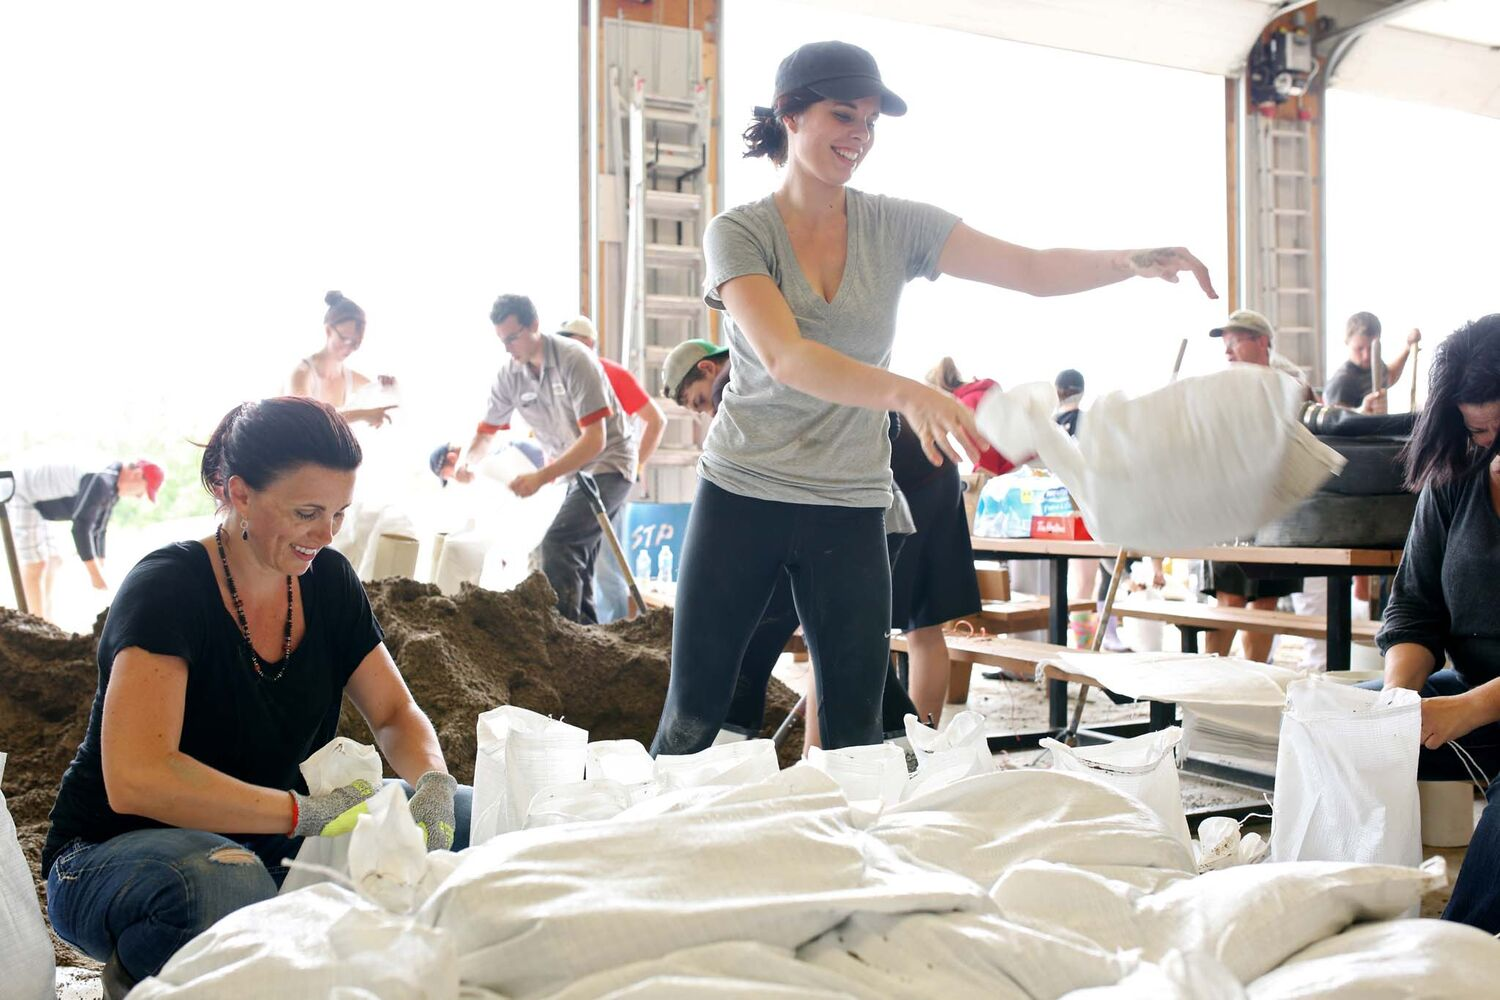 Volunteers Kyla Martens and Brooke Williams make sandbags at the public works building in Virden during flood fighting efforts on Monday afternoon.  (Tim Smith / Brandon Sun)